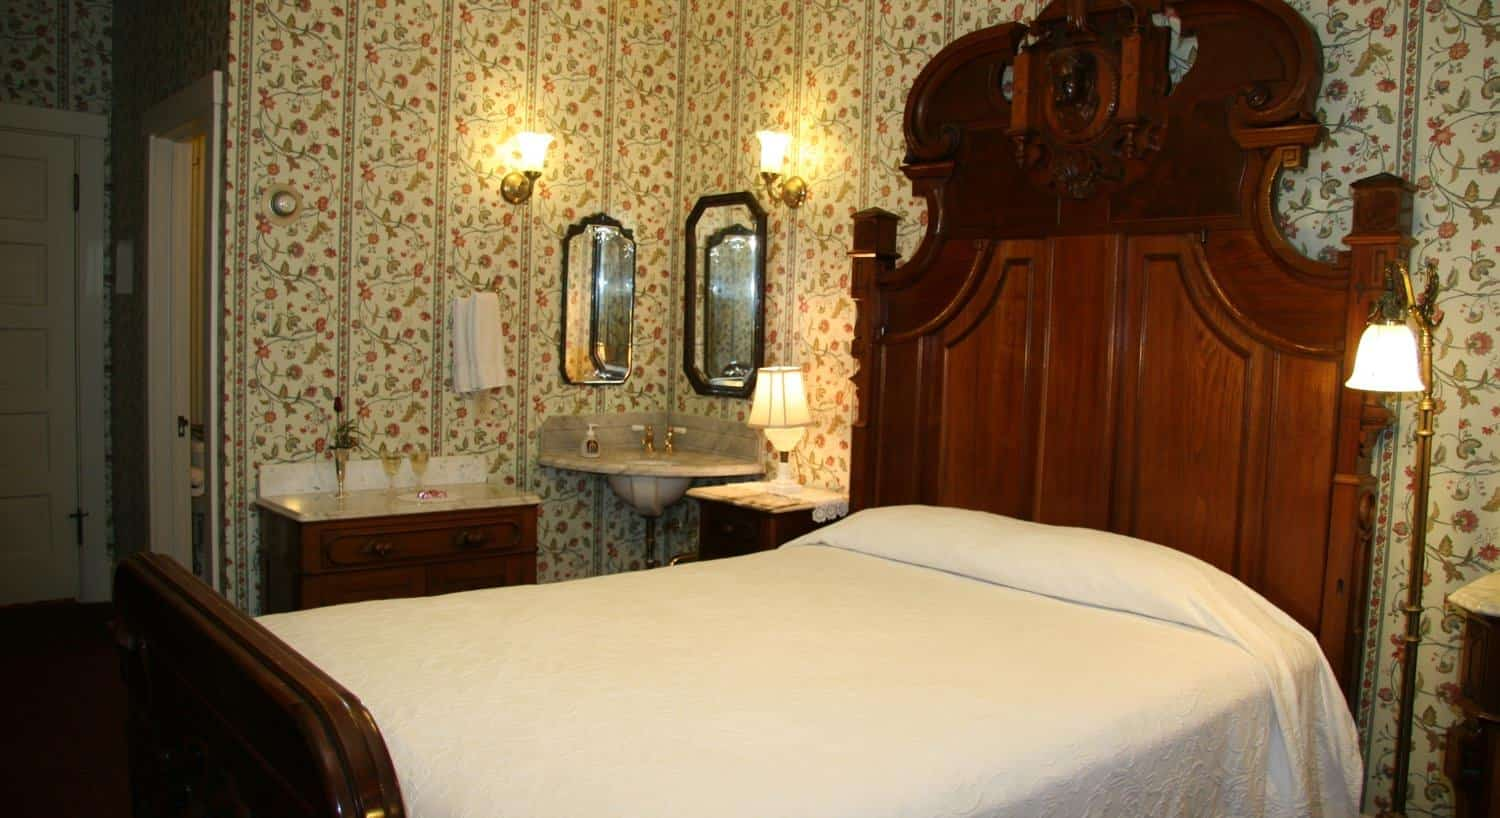 Jenny guest room with floral and striped walls, wood bed, nightstands and wash basin